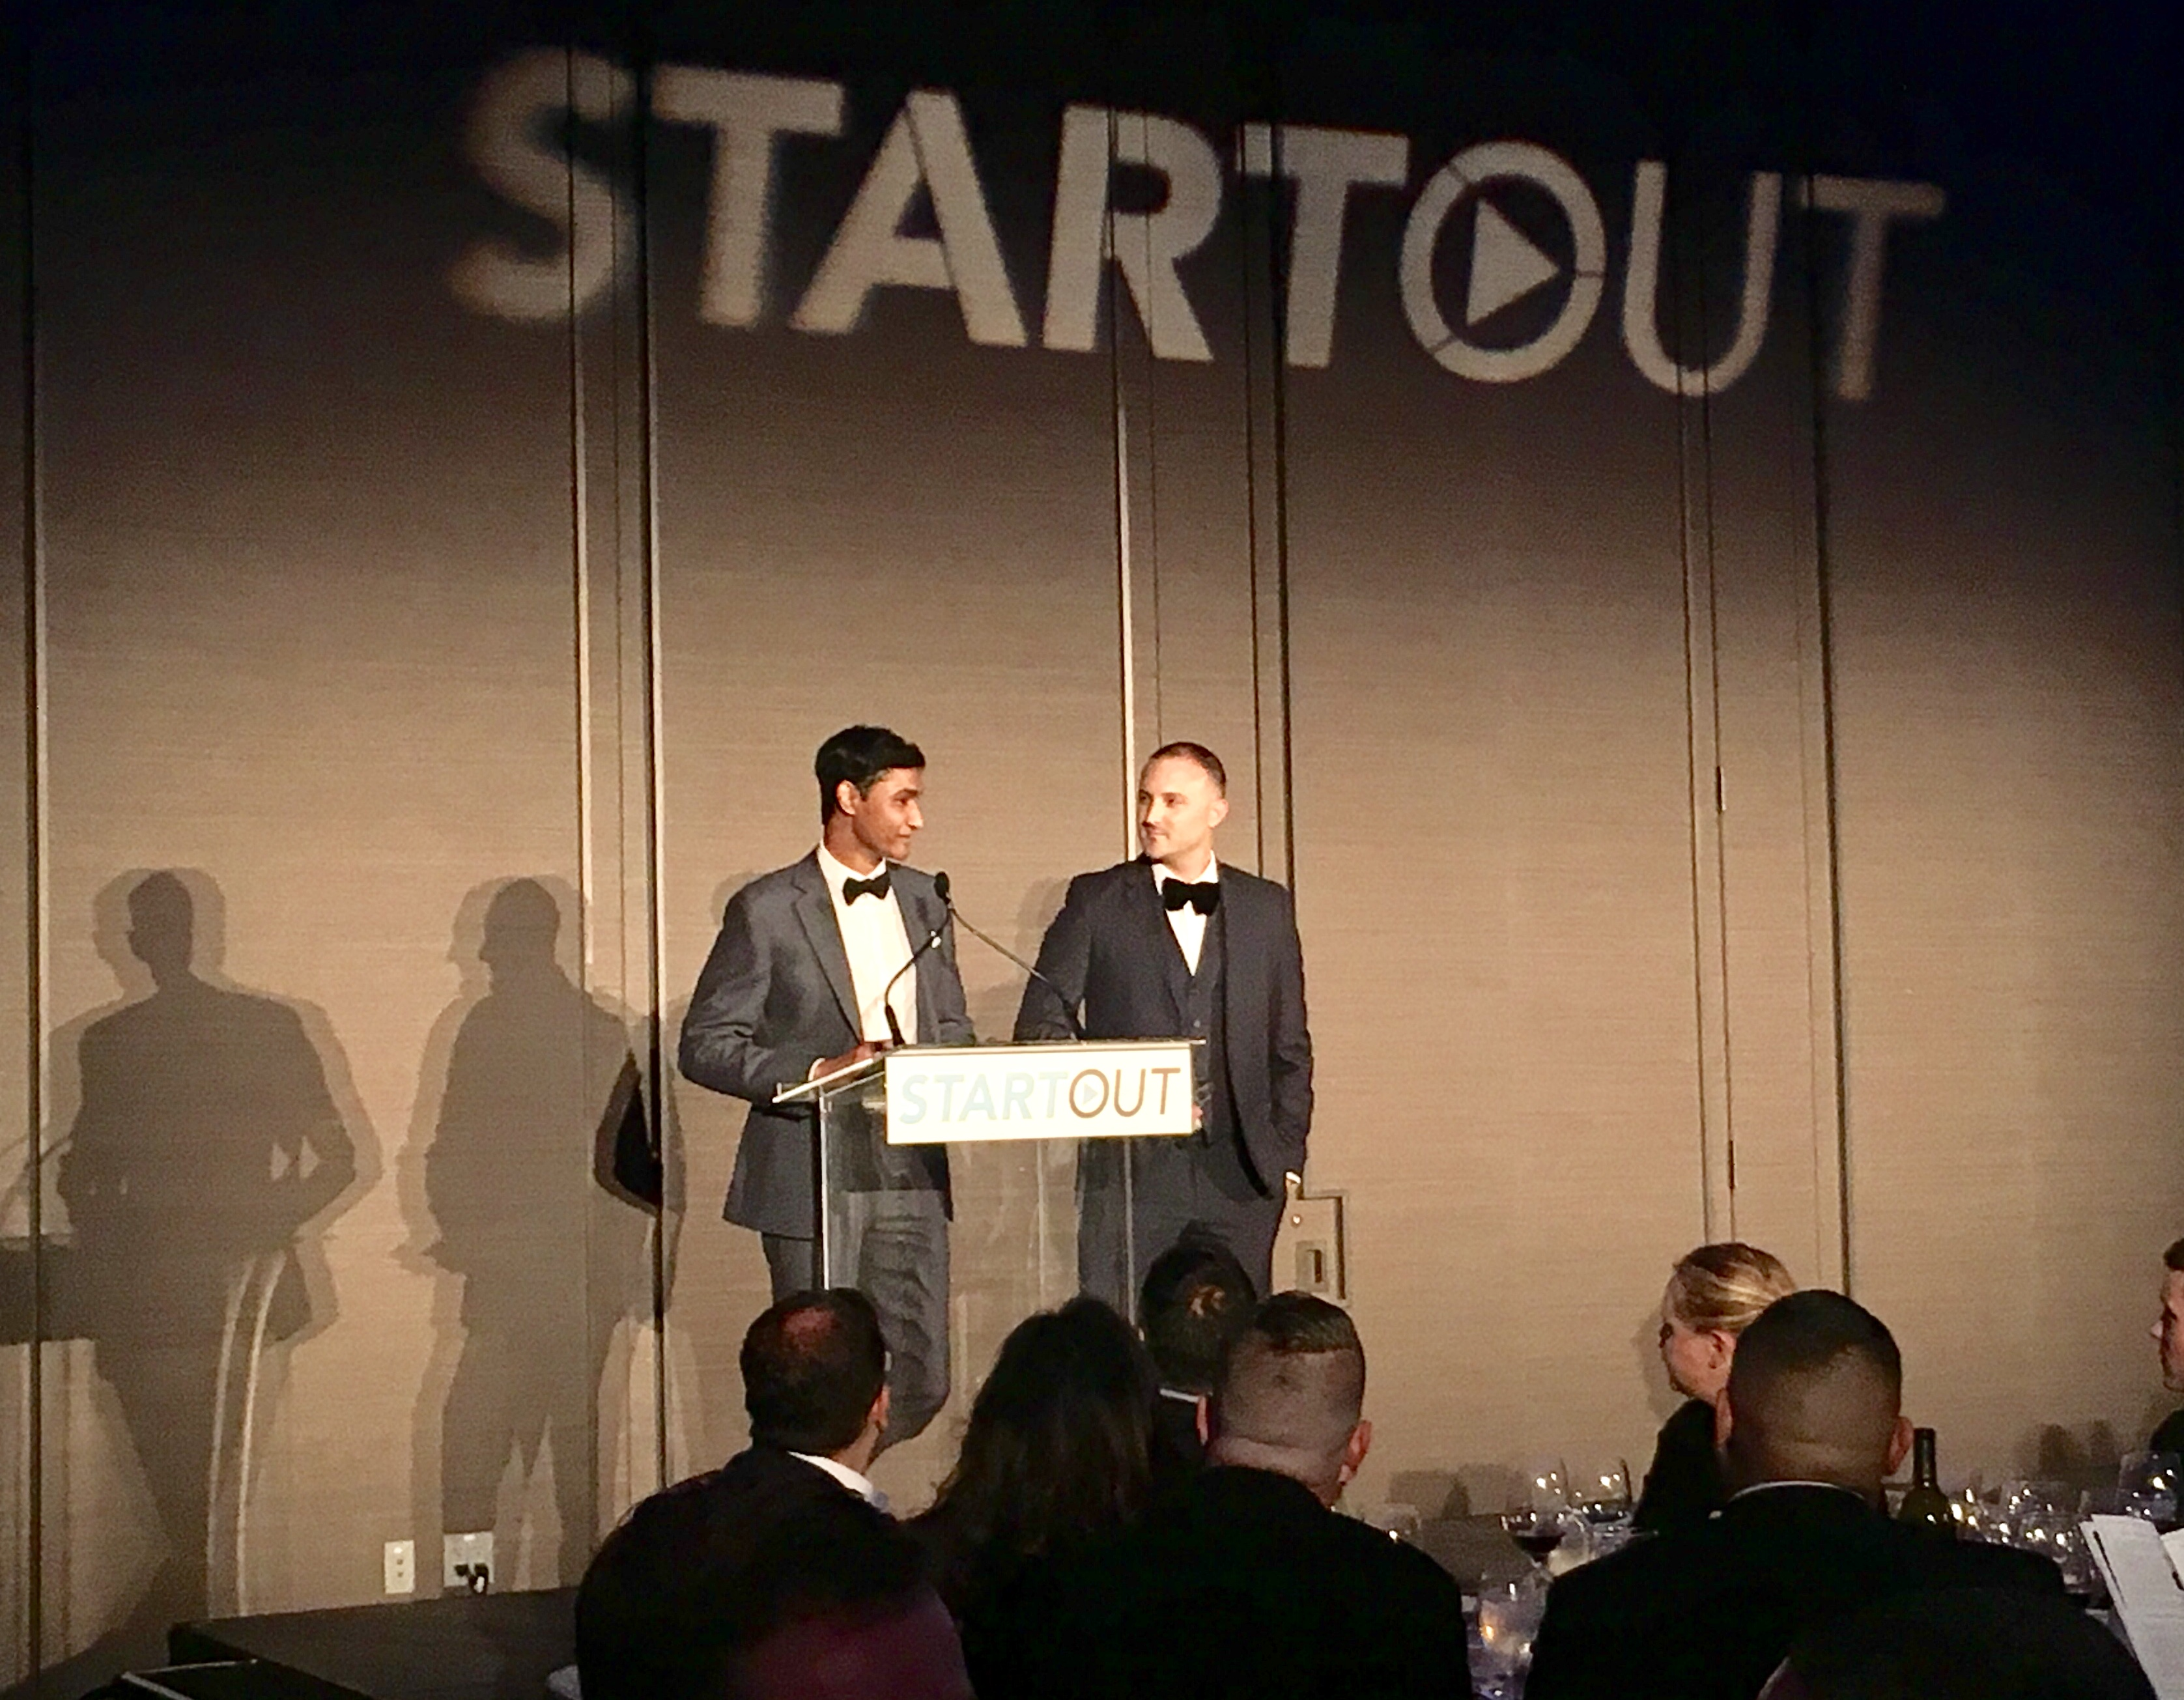 Zeguro Founders Honored at 8th Annual StartOut Awards Friday